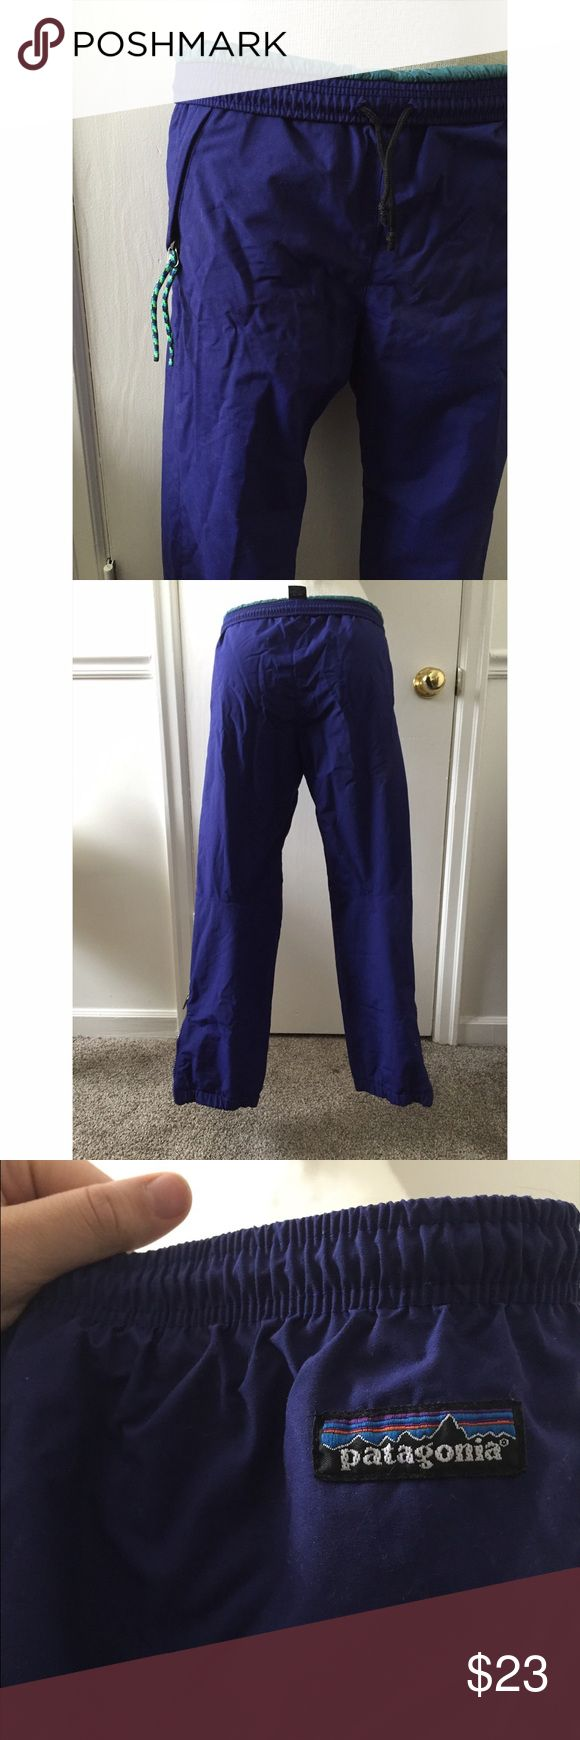 Patagonia snow pants youth Youth 14 Mint condition Patagonia snow pants. Patagonia Other